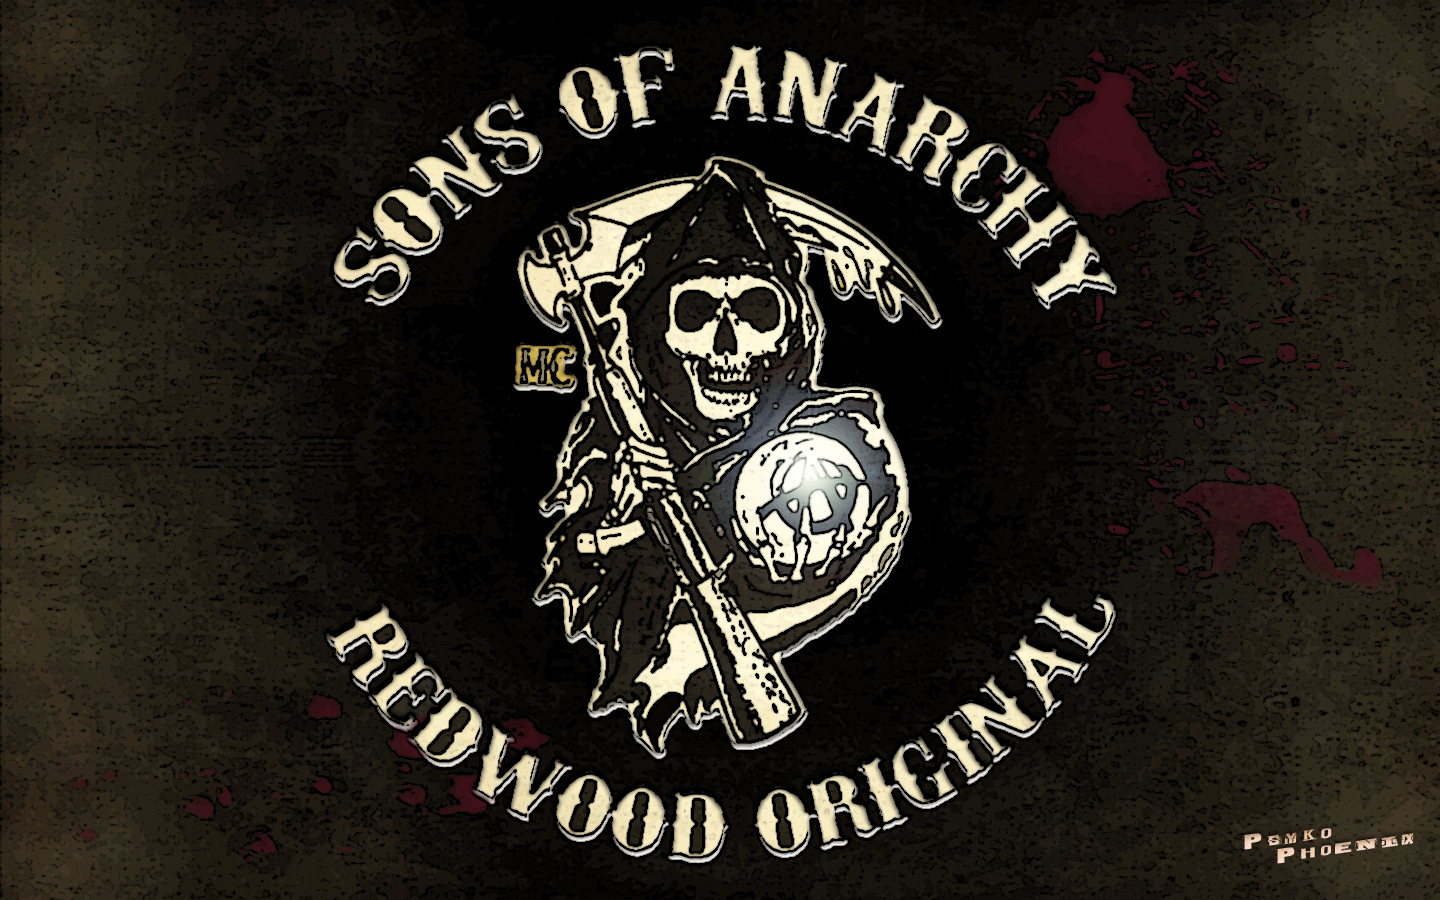 http://4.bp.blogspot.com/-C2gNtyqwEdU/TexSHeKuRII/AAAAAAAAQFU/As6SULHuydo/s1600/Sons_of_Anarchy_Wallpaper.jpg